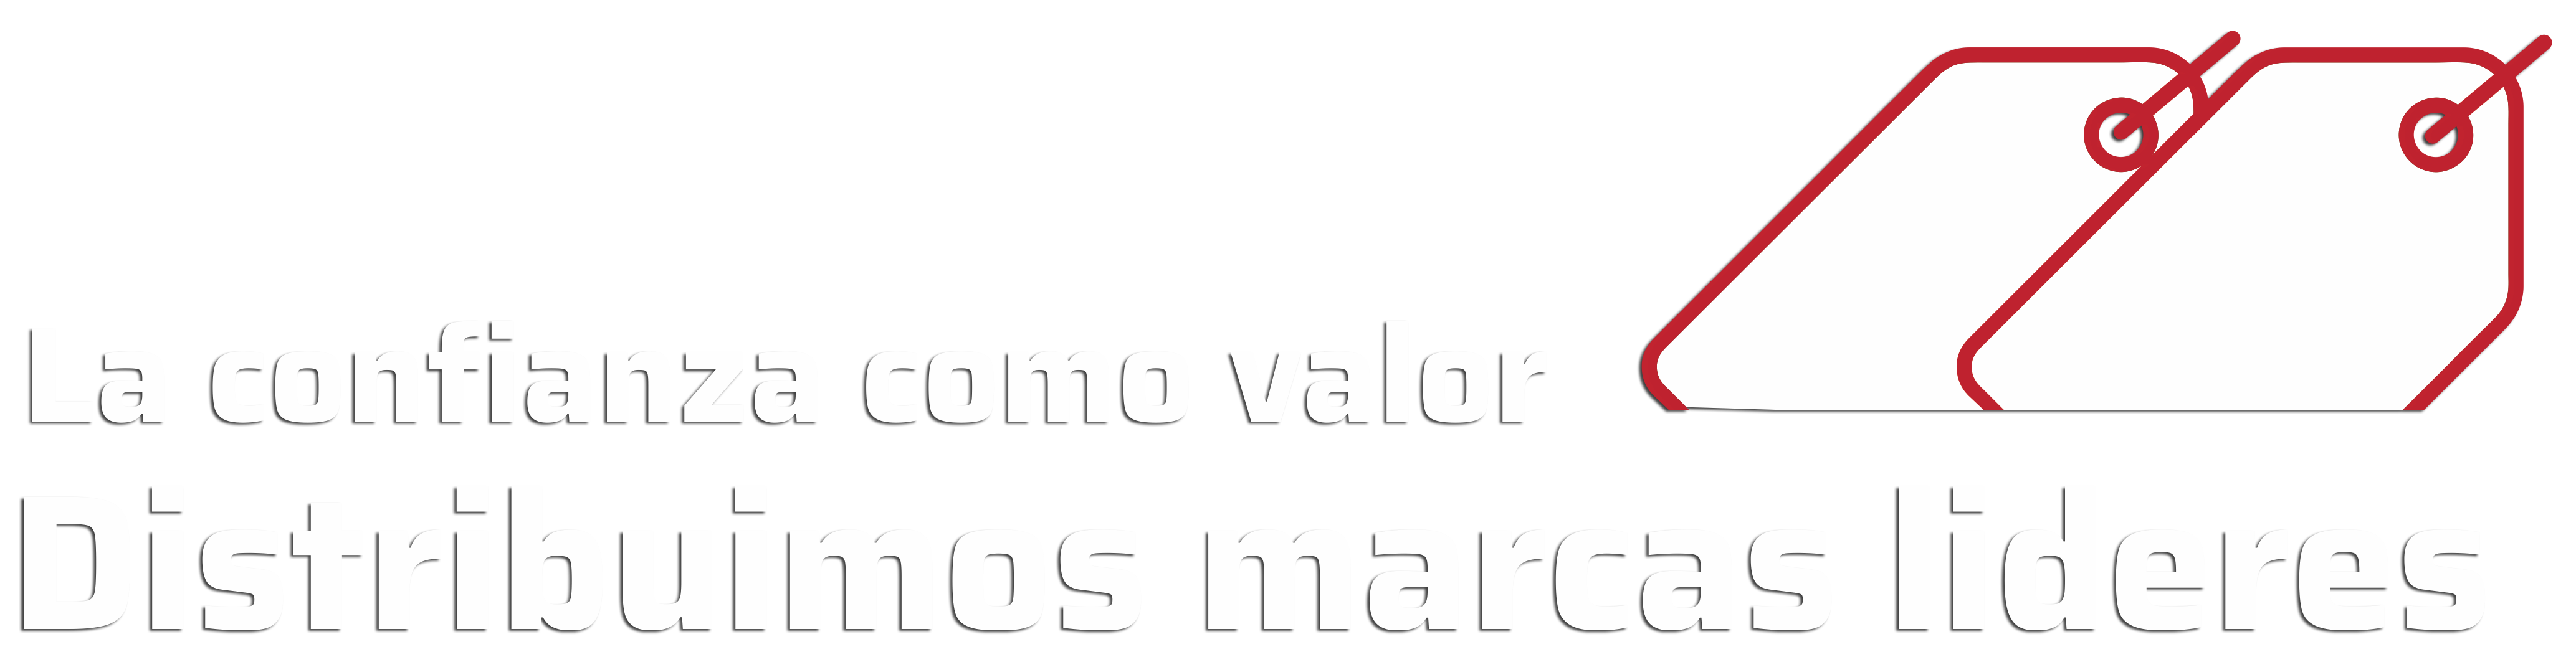 marcas_lideres.png